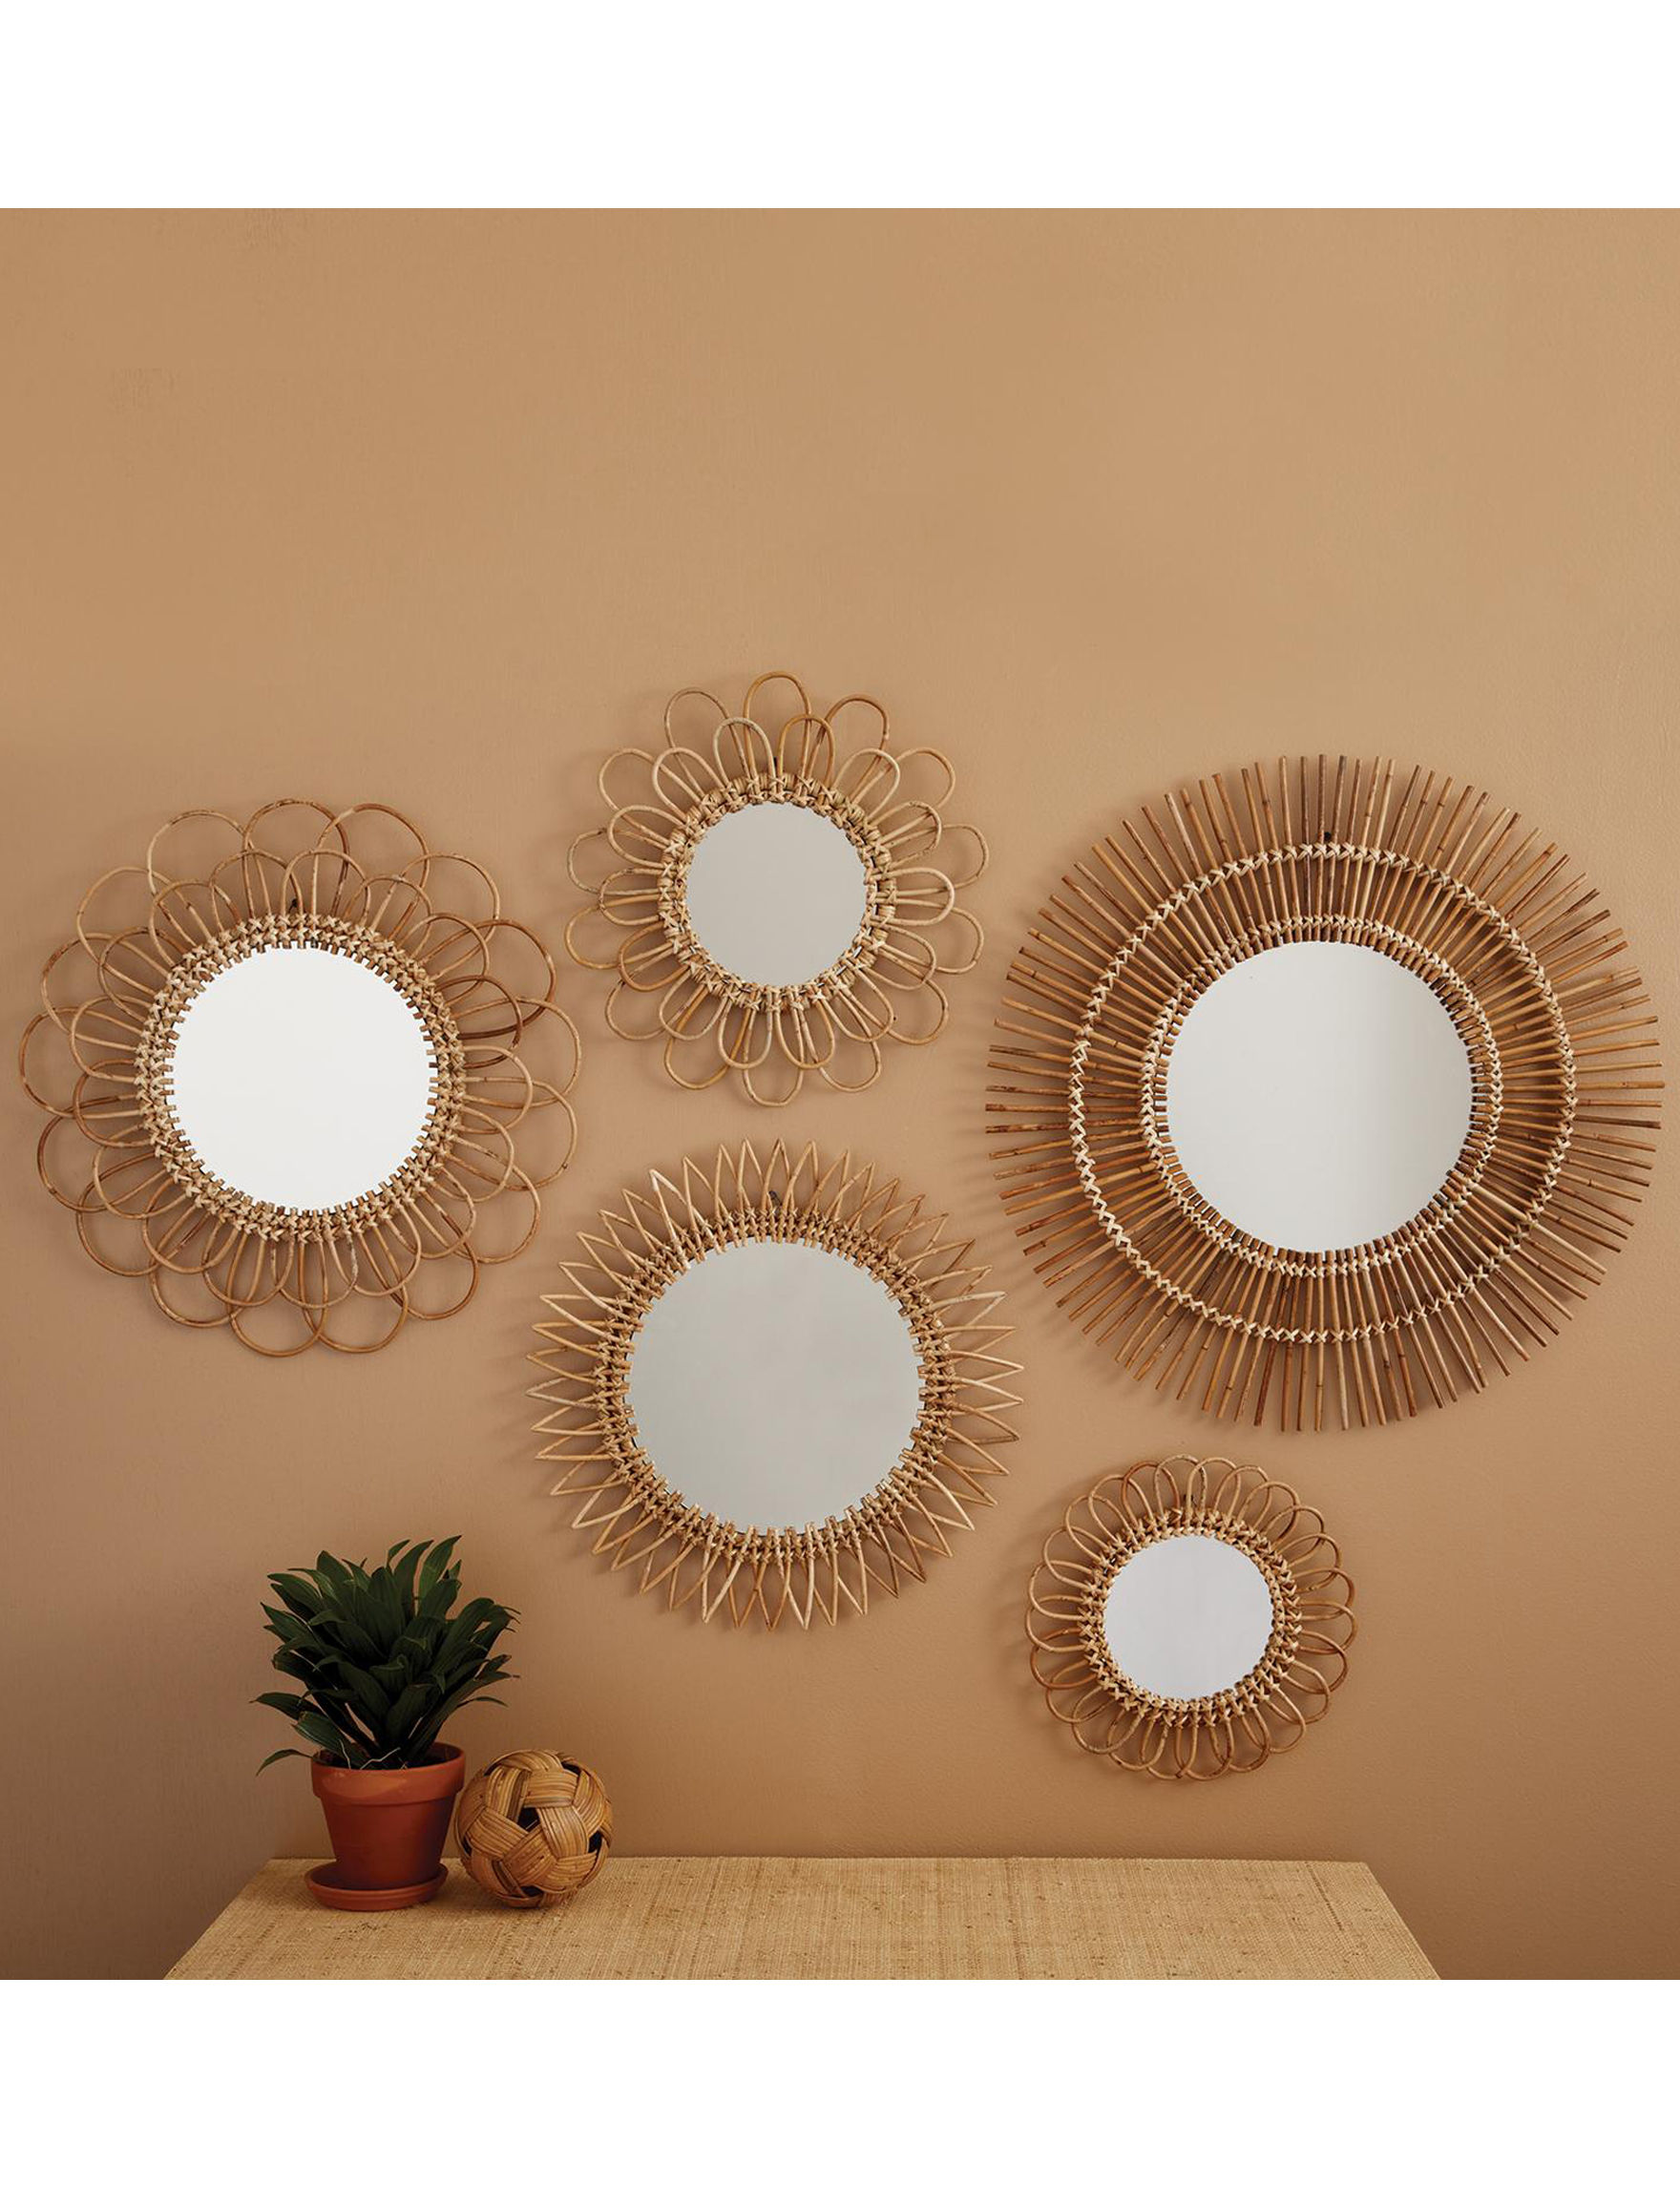 Two's Company Gold Mirrors Wall Decor